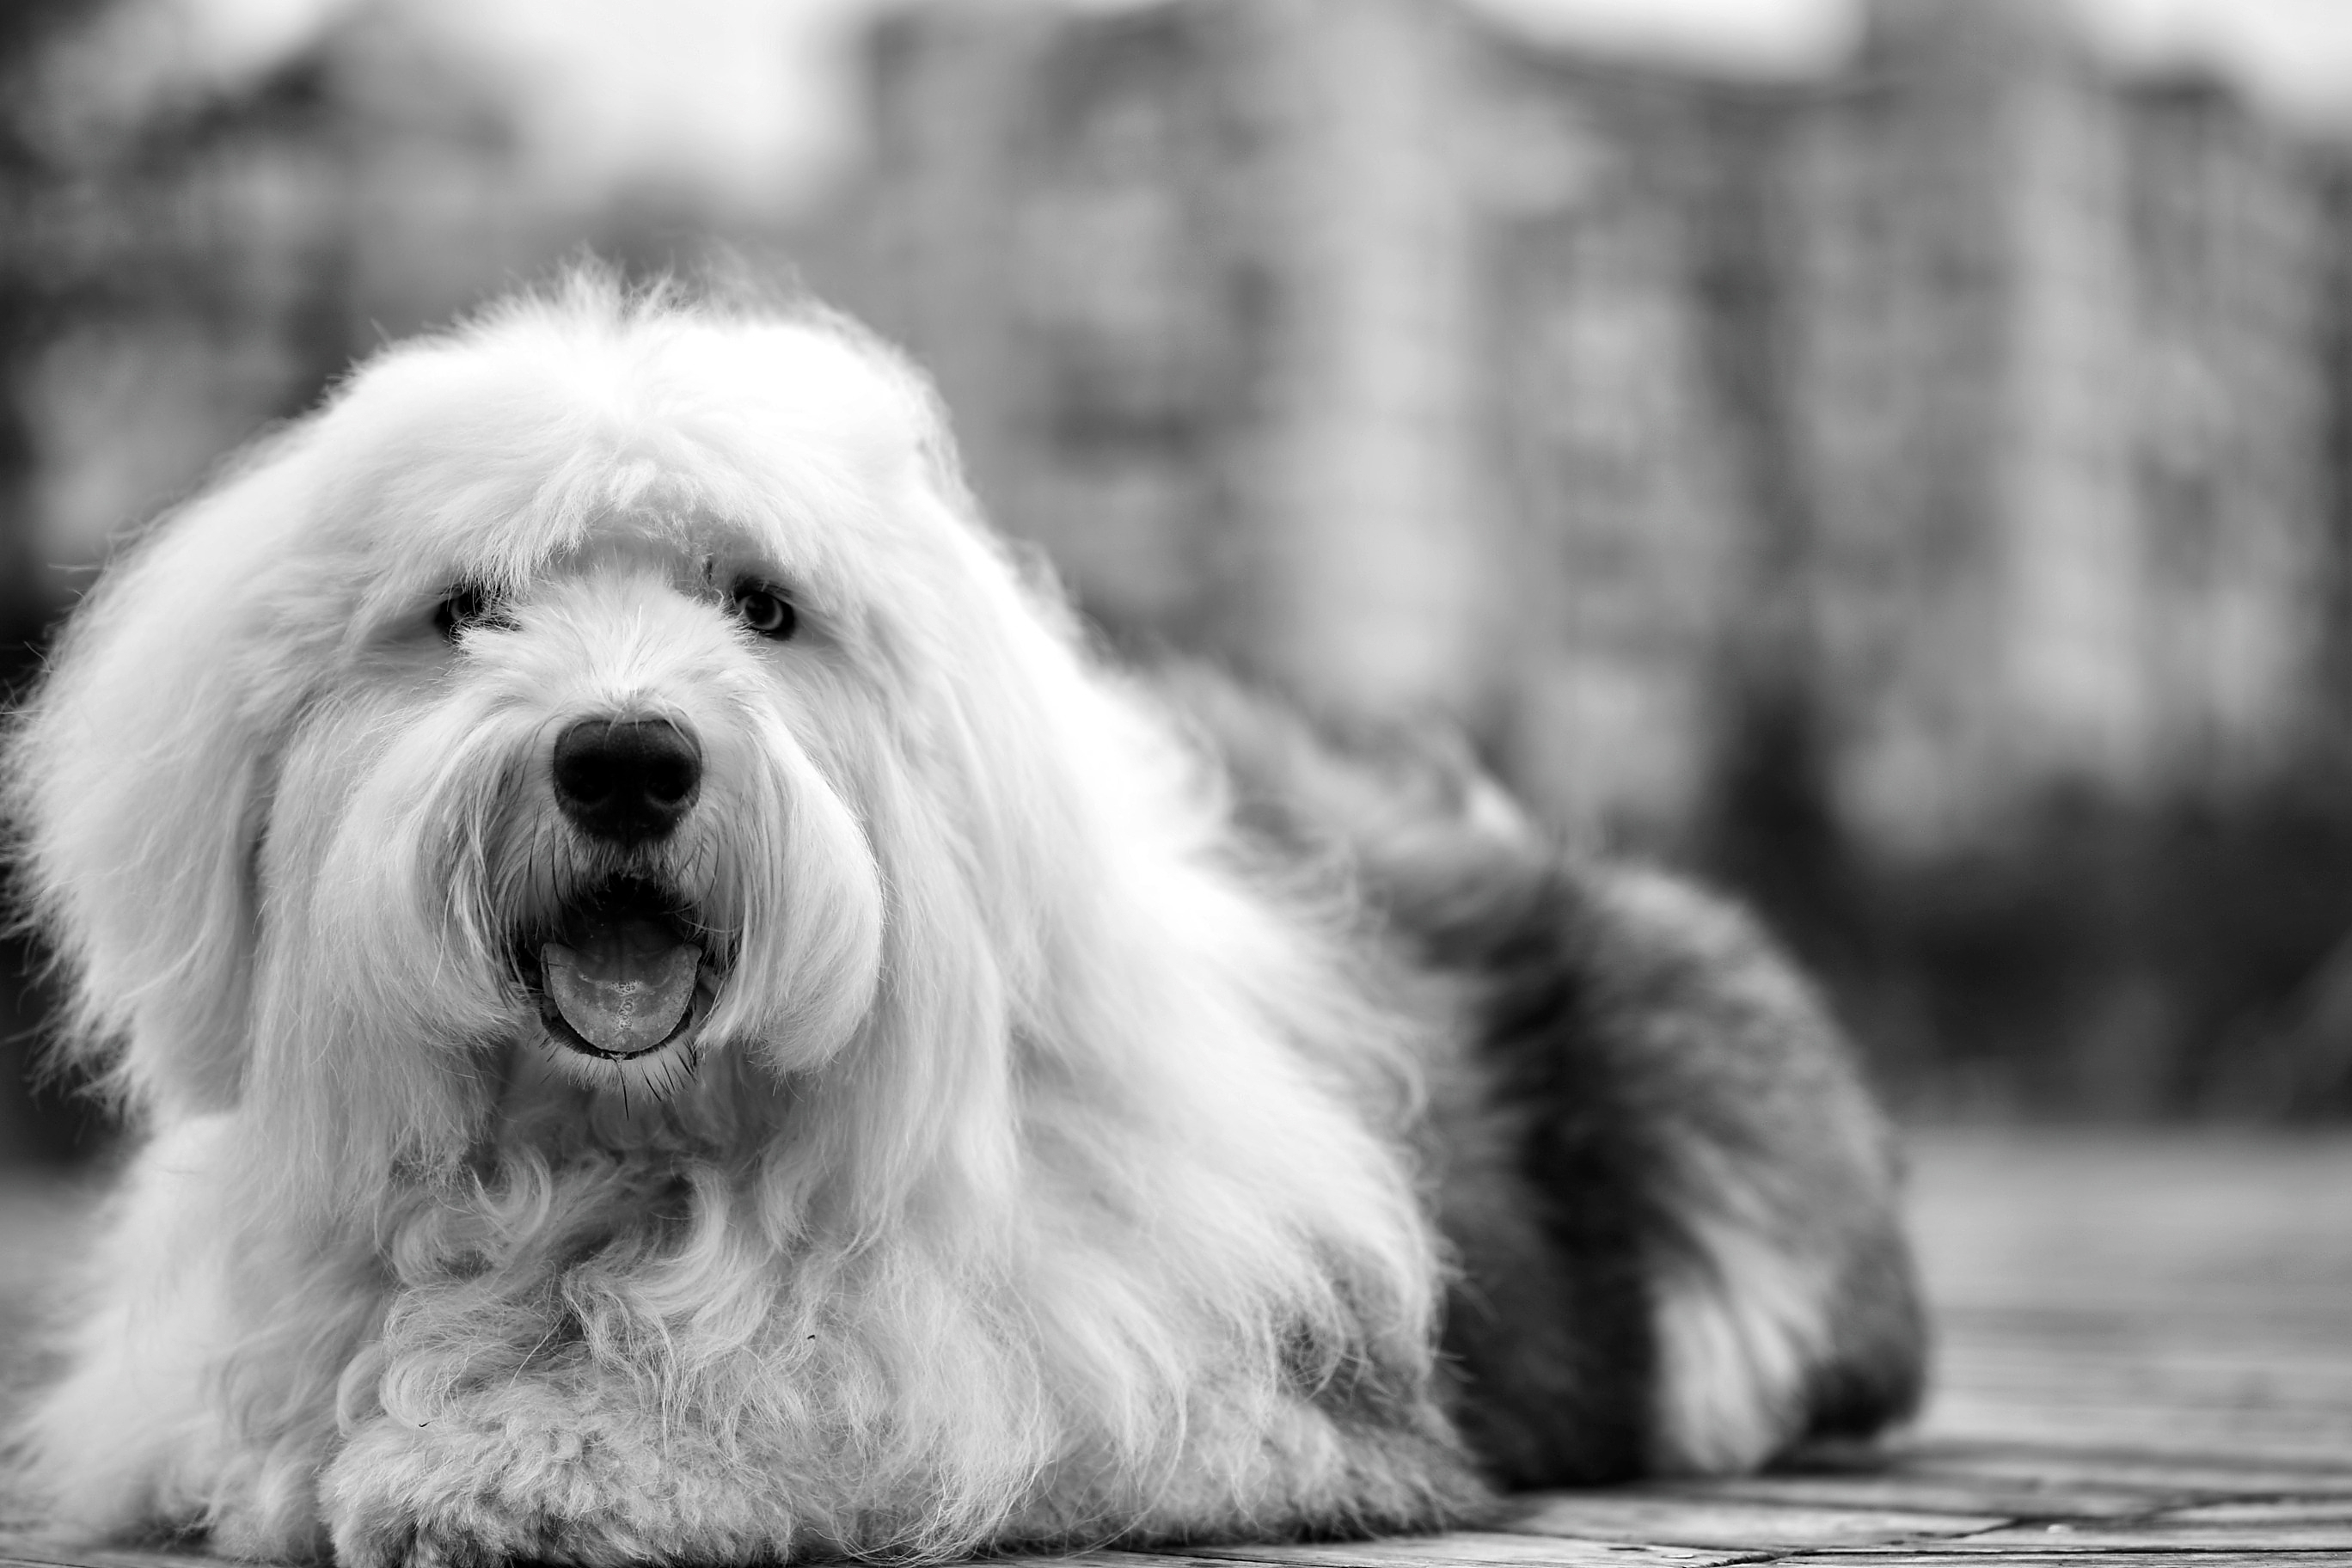 High Definition Animal Wallpapers White Black Old English Sheepdog 183 Free Stock Photo